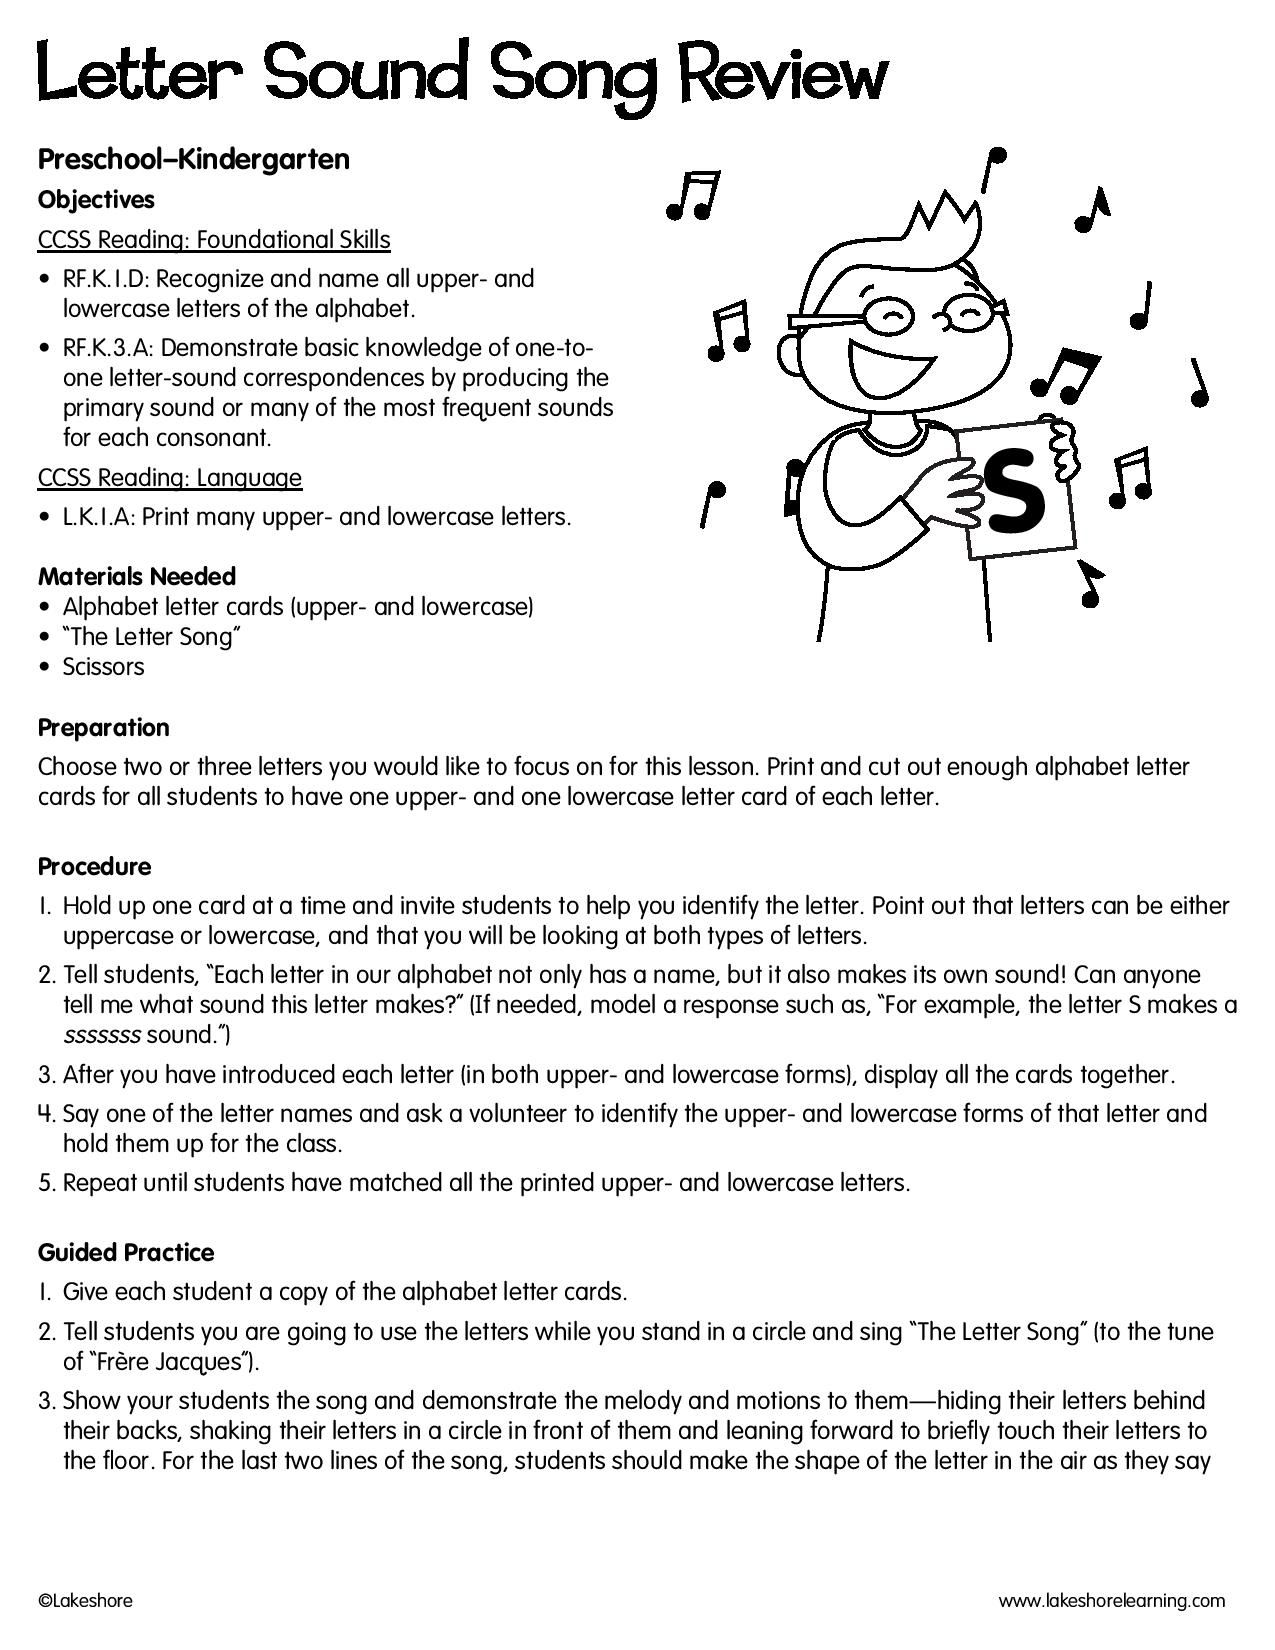 Letter Sound Song Review Lessonplan